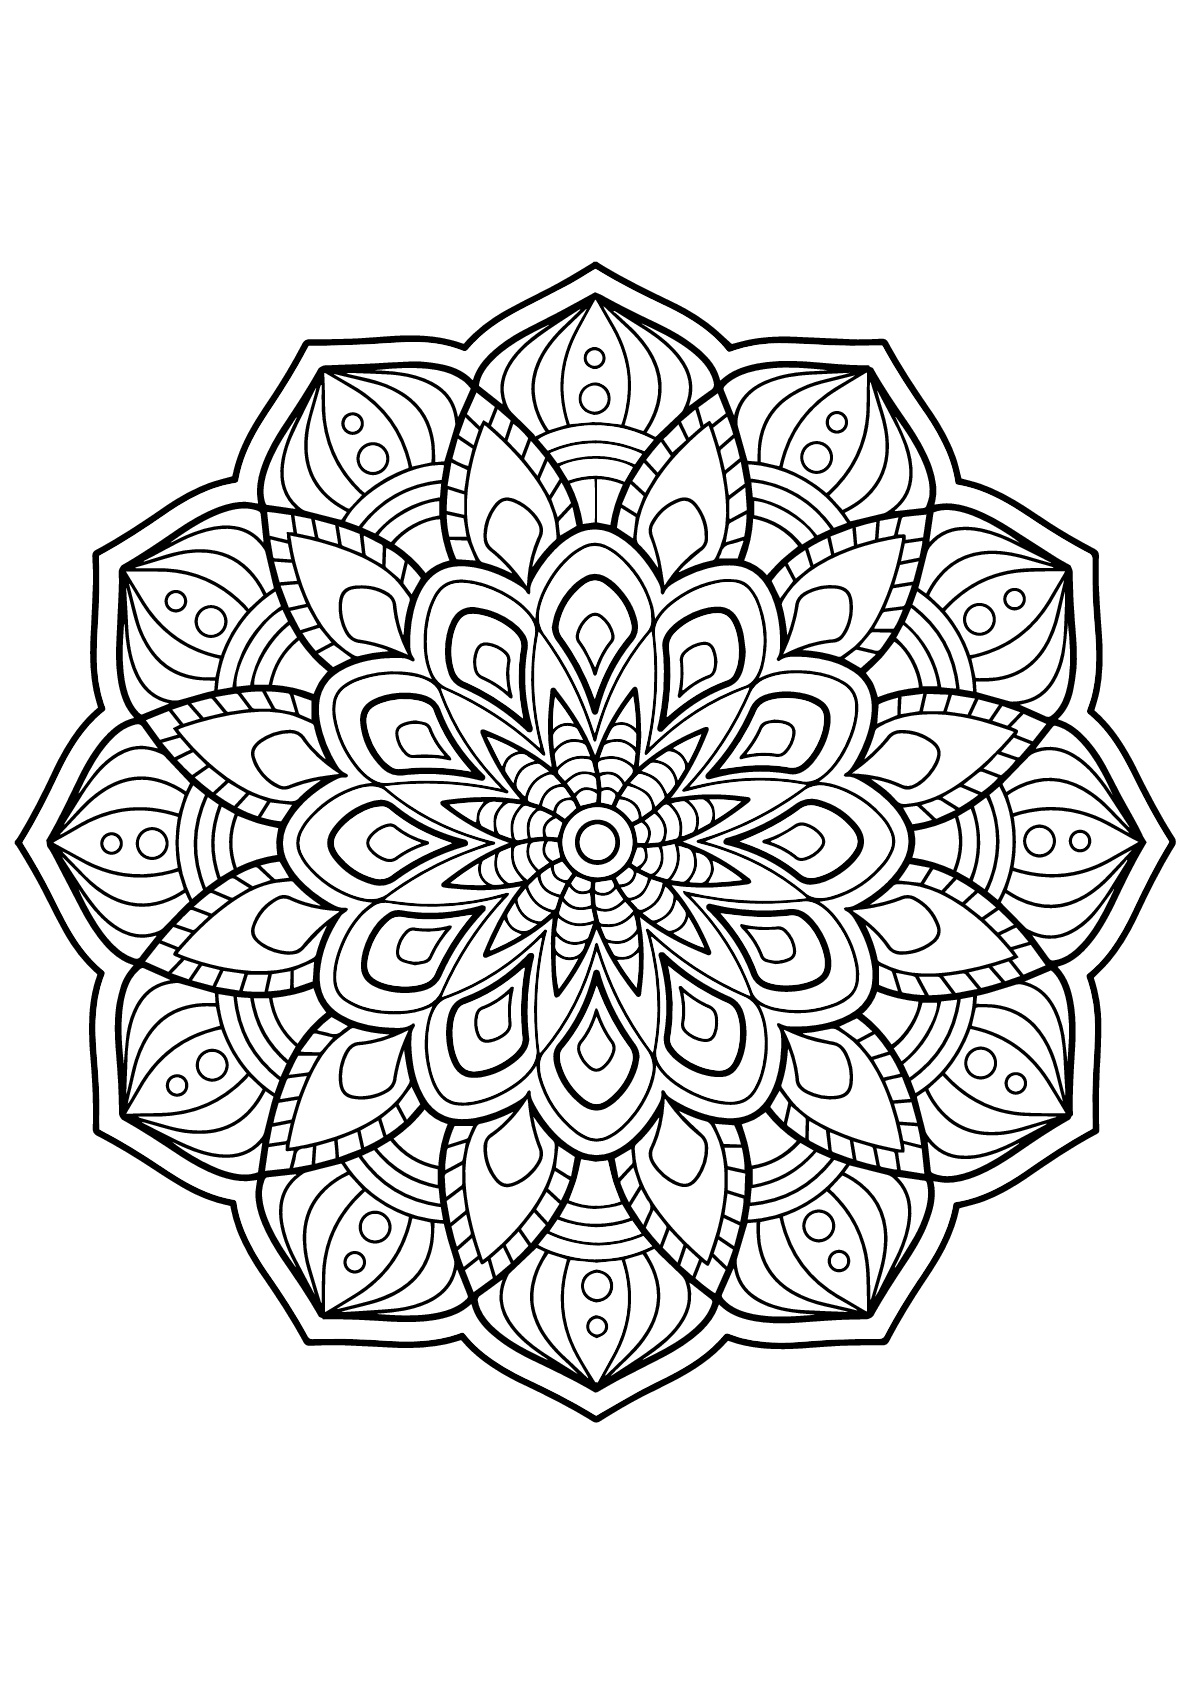 Mandala full of beautiful details from Free Coloring book for adults